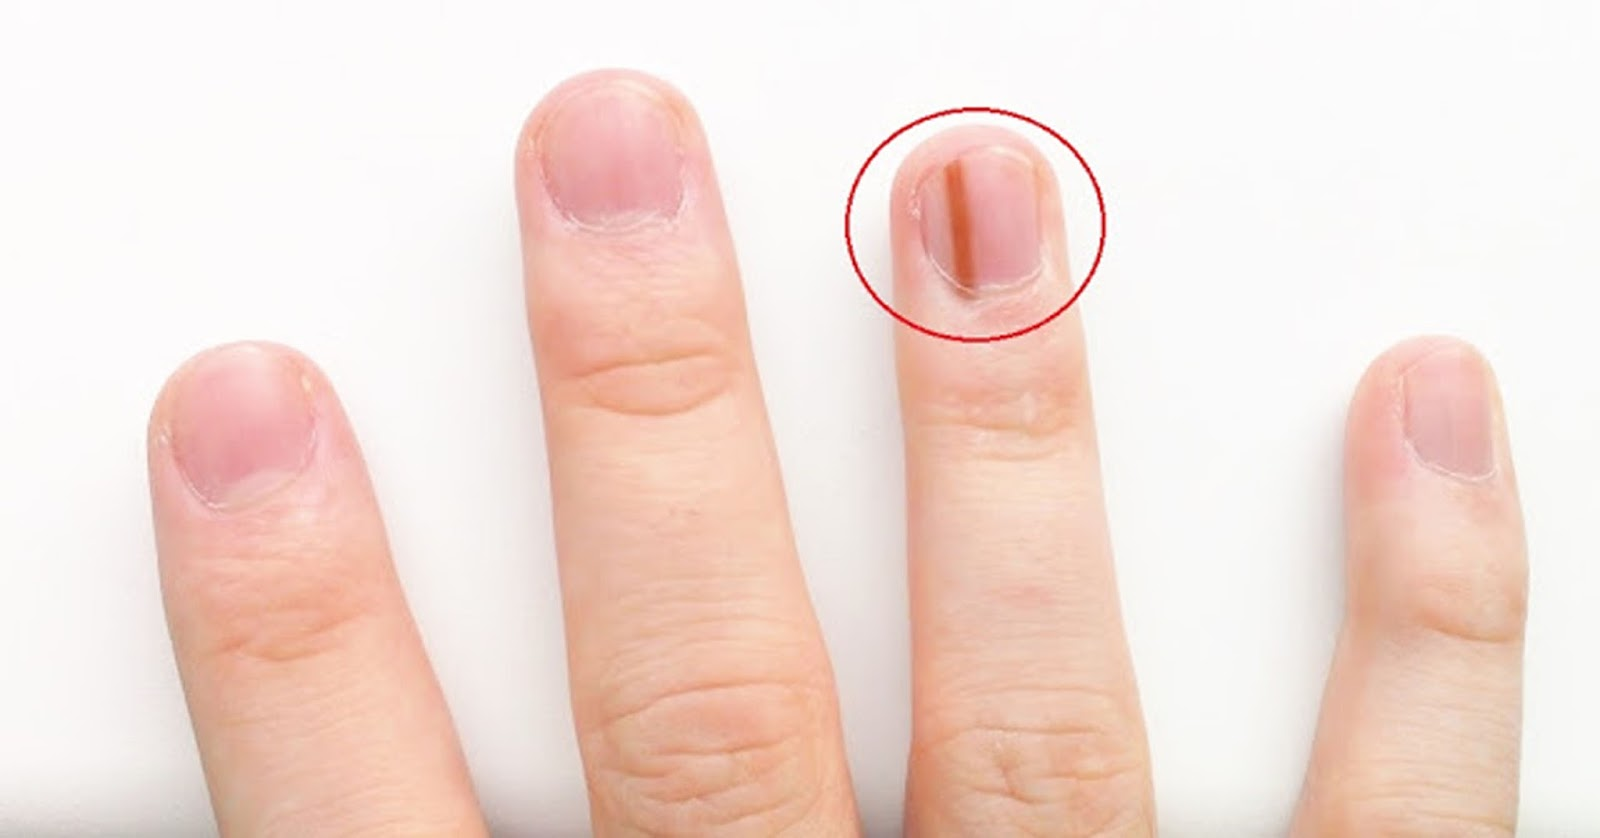 Pay attention ! IF YOU FIND IN THE SIGNS BLACK NAILS THE SIGN CANCER ...